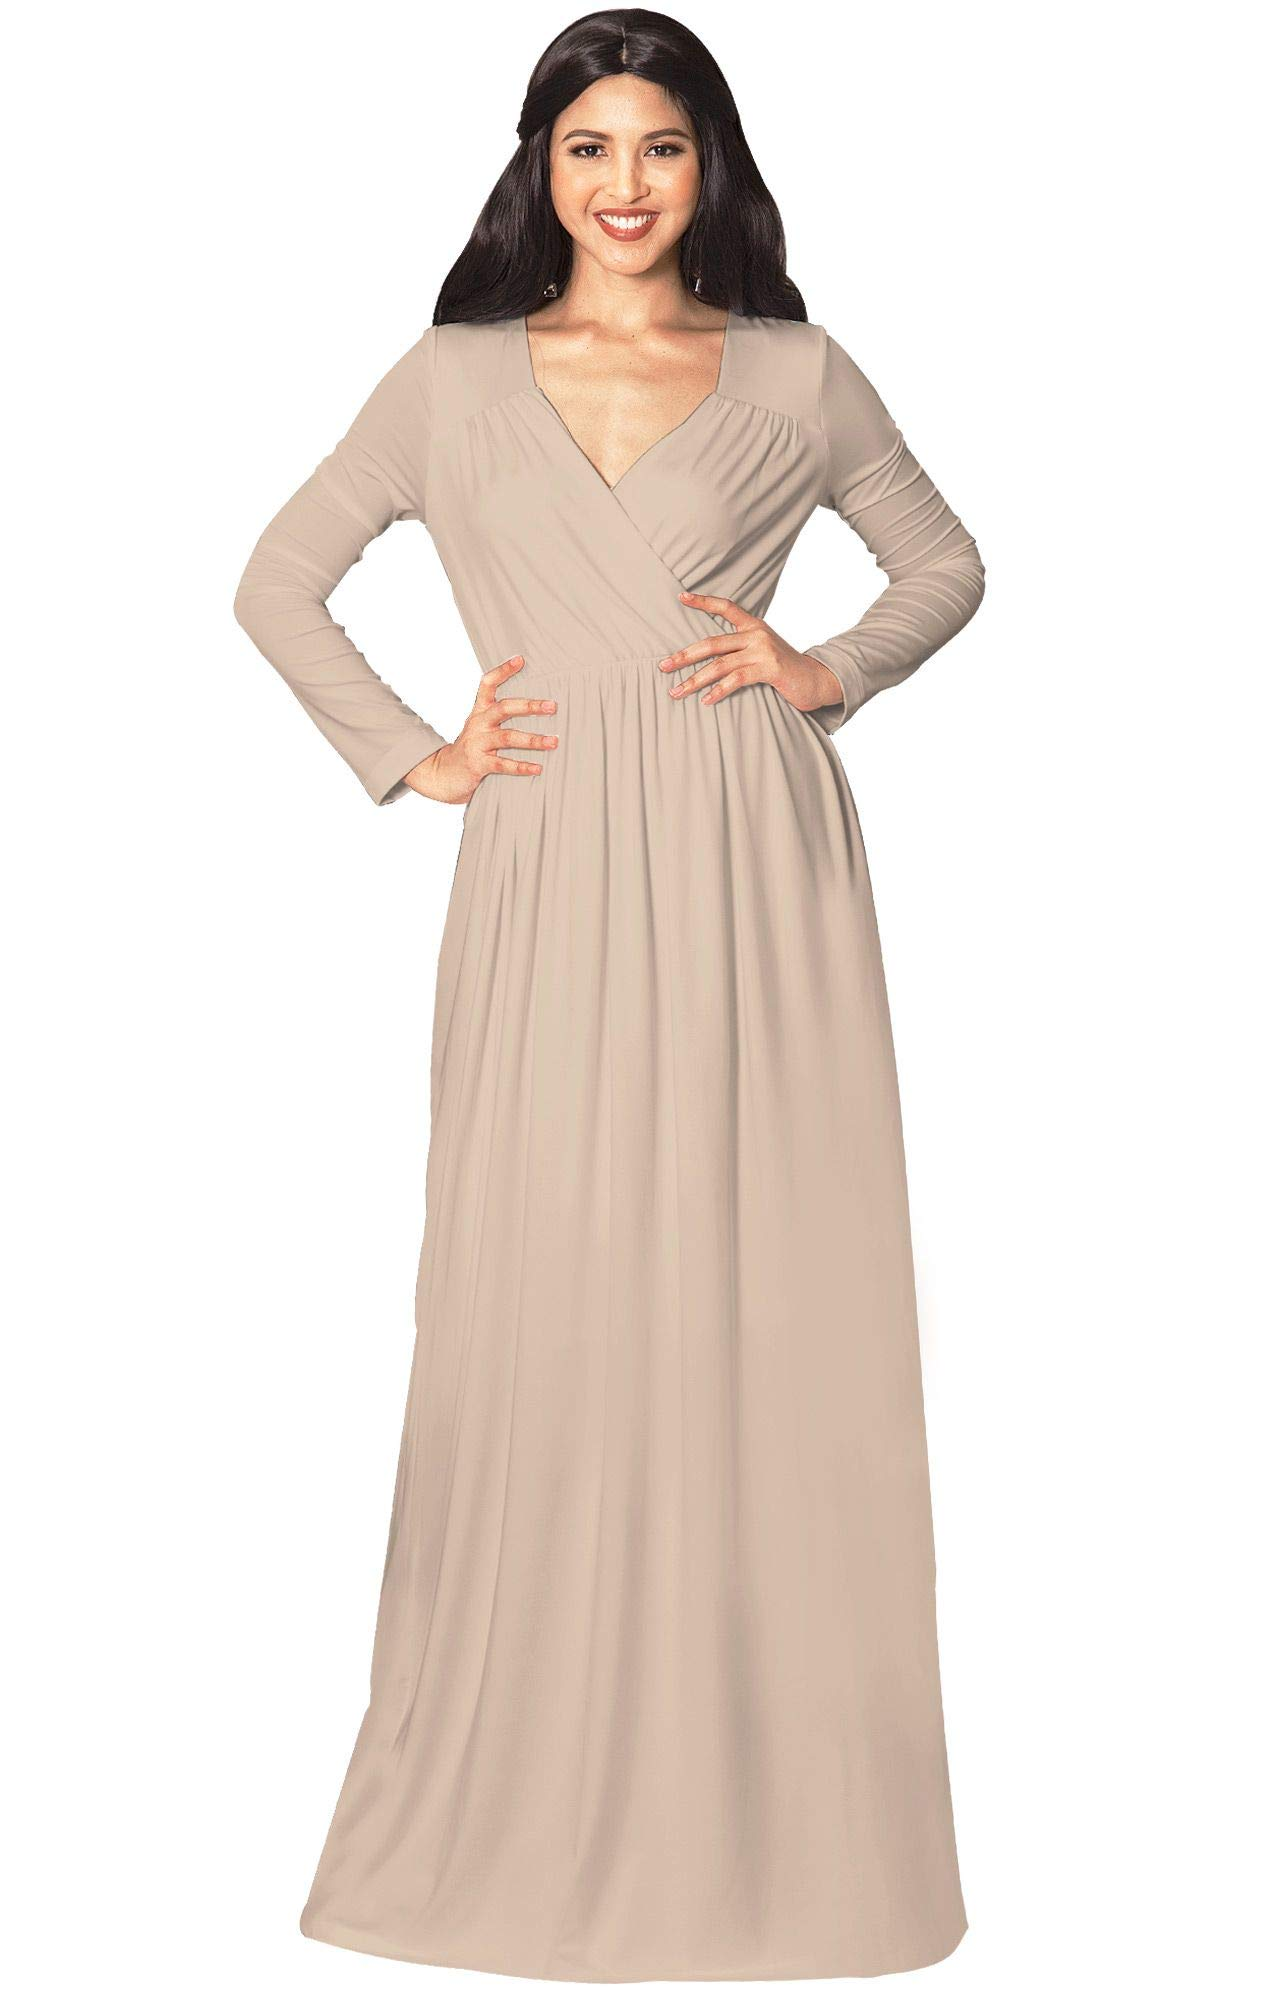 2301c80a2ad KOH KOH Plus Size Womens Long Sleeve Sleeves Empire Waist Floor-Length  Cocktail Elegant Evening Fall Modest Winter Formal Abaya Cute Gown Gowns  Maxi Dress ...